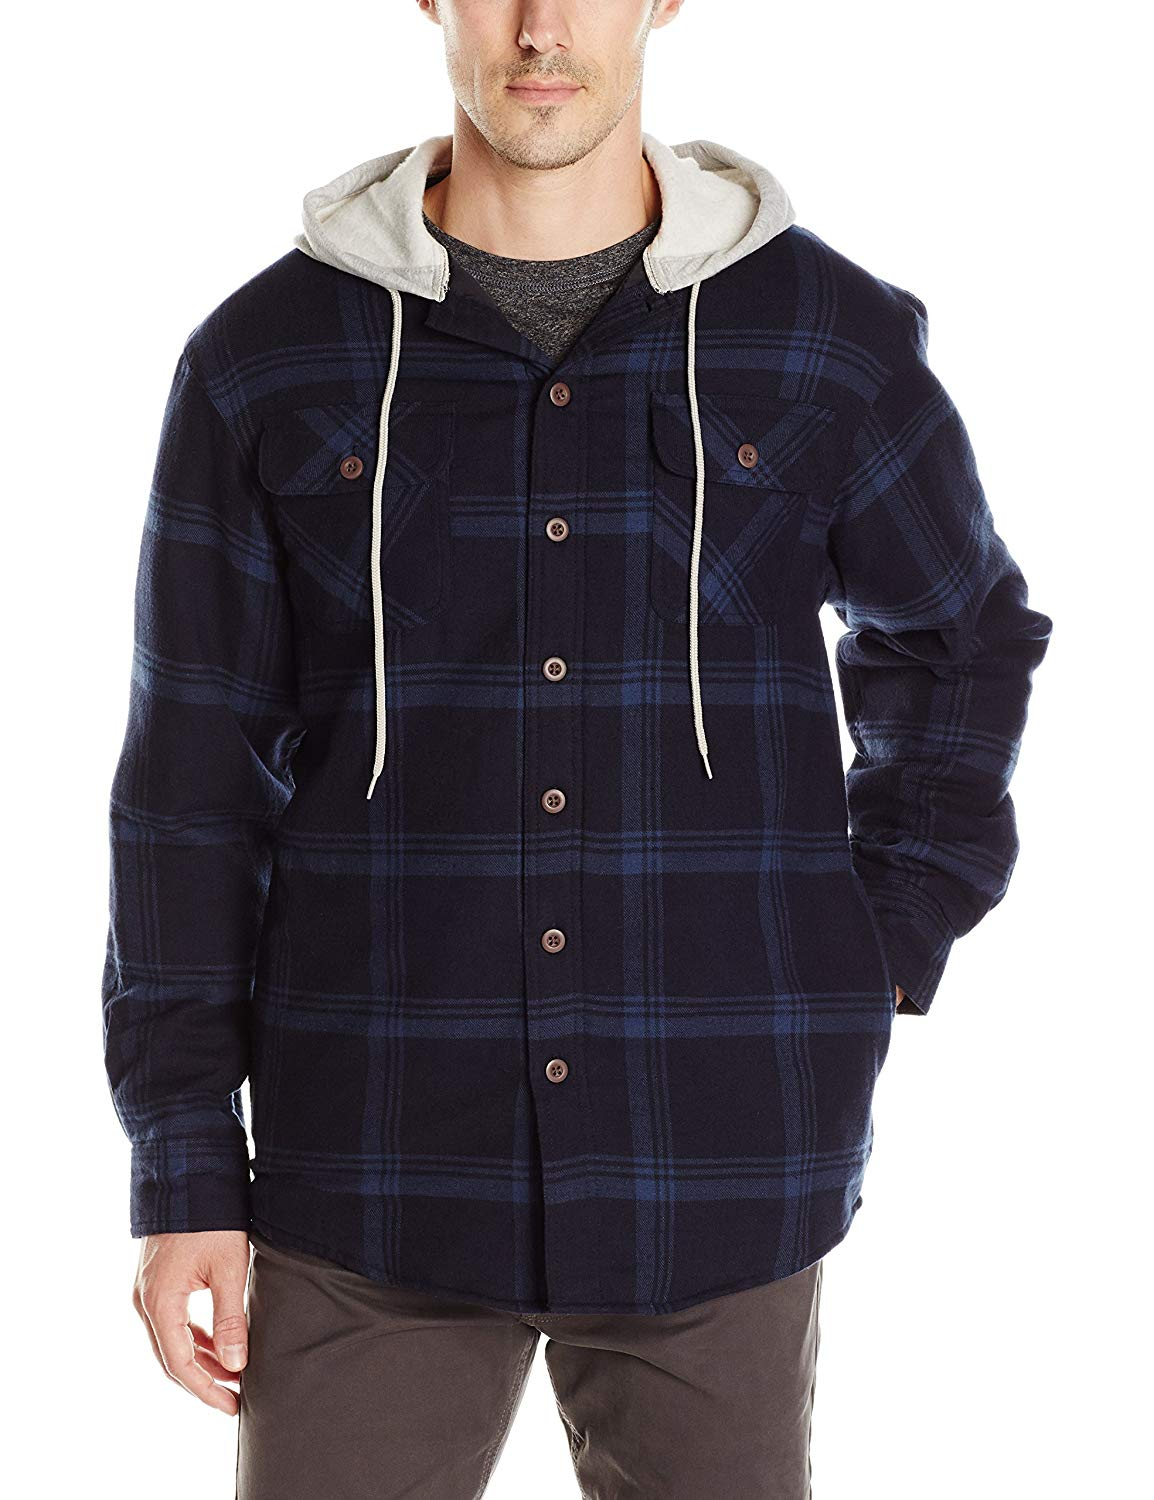 Wrangler Authentics Men/'s Long Sleeve Quilted Lined Flannel Shirt Jacket with Hood